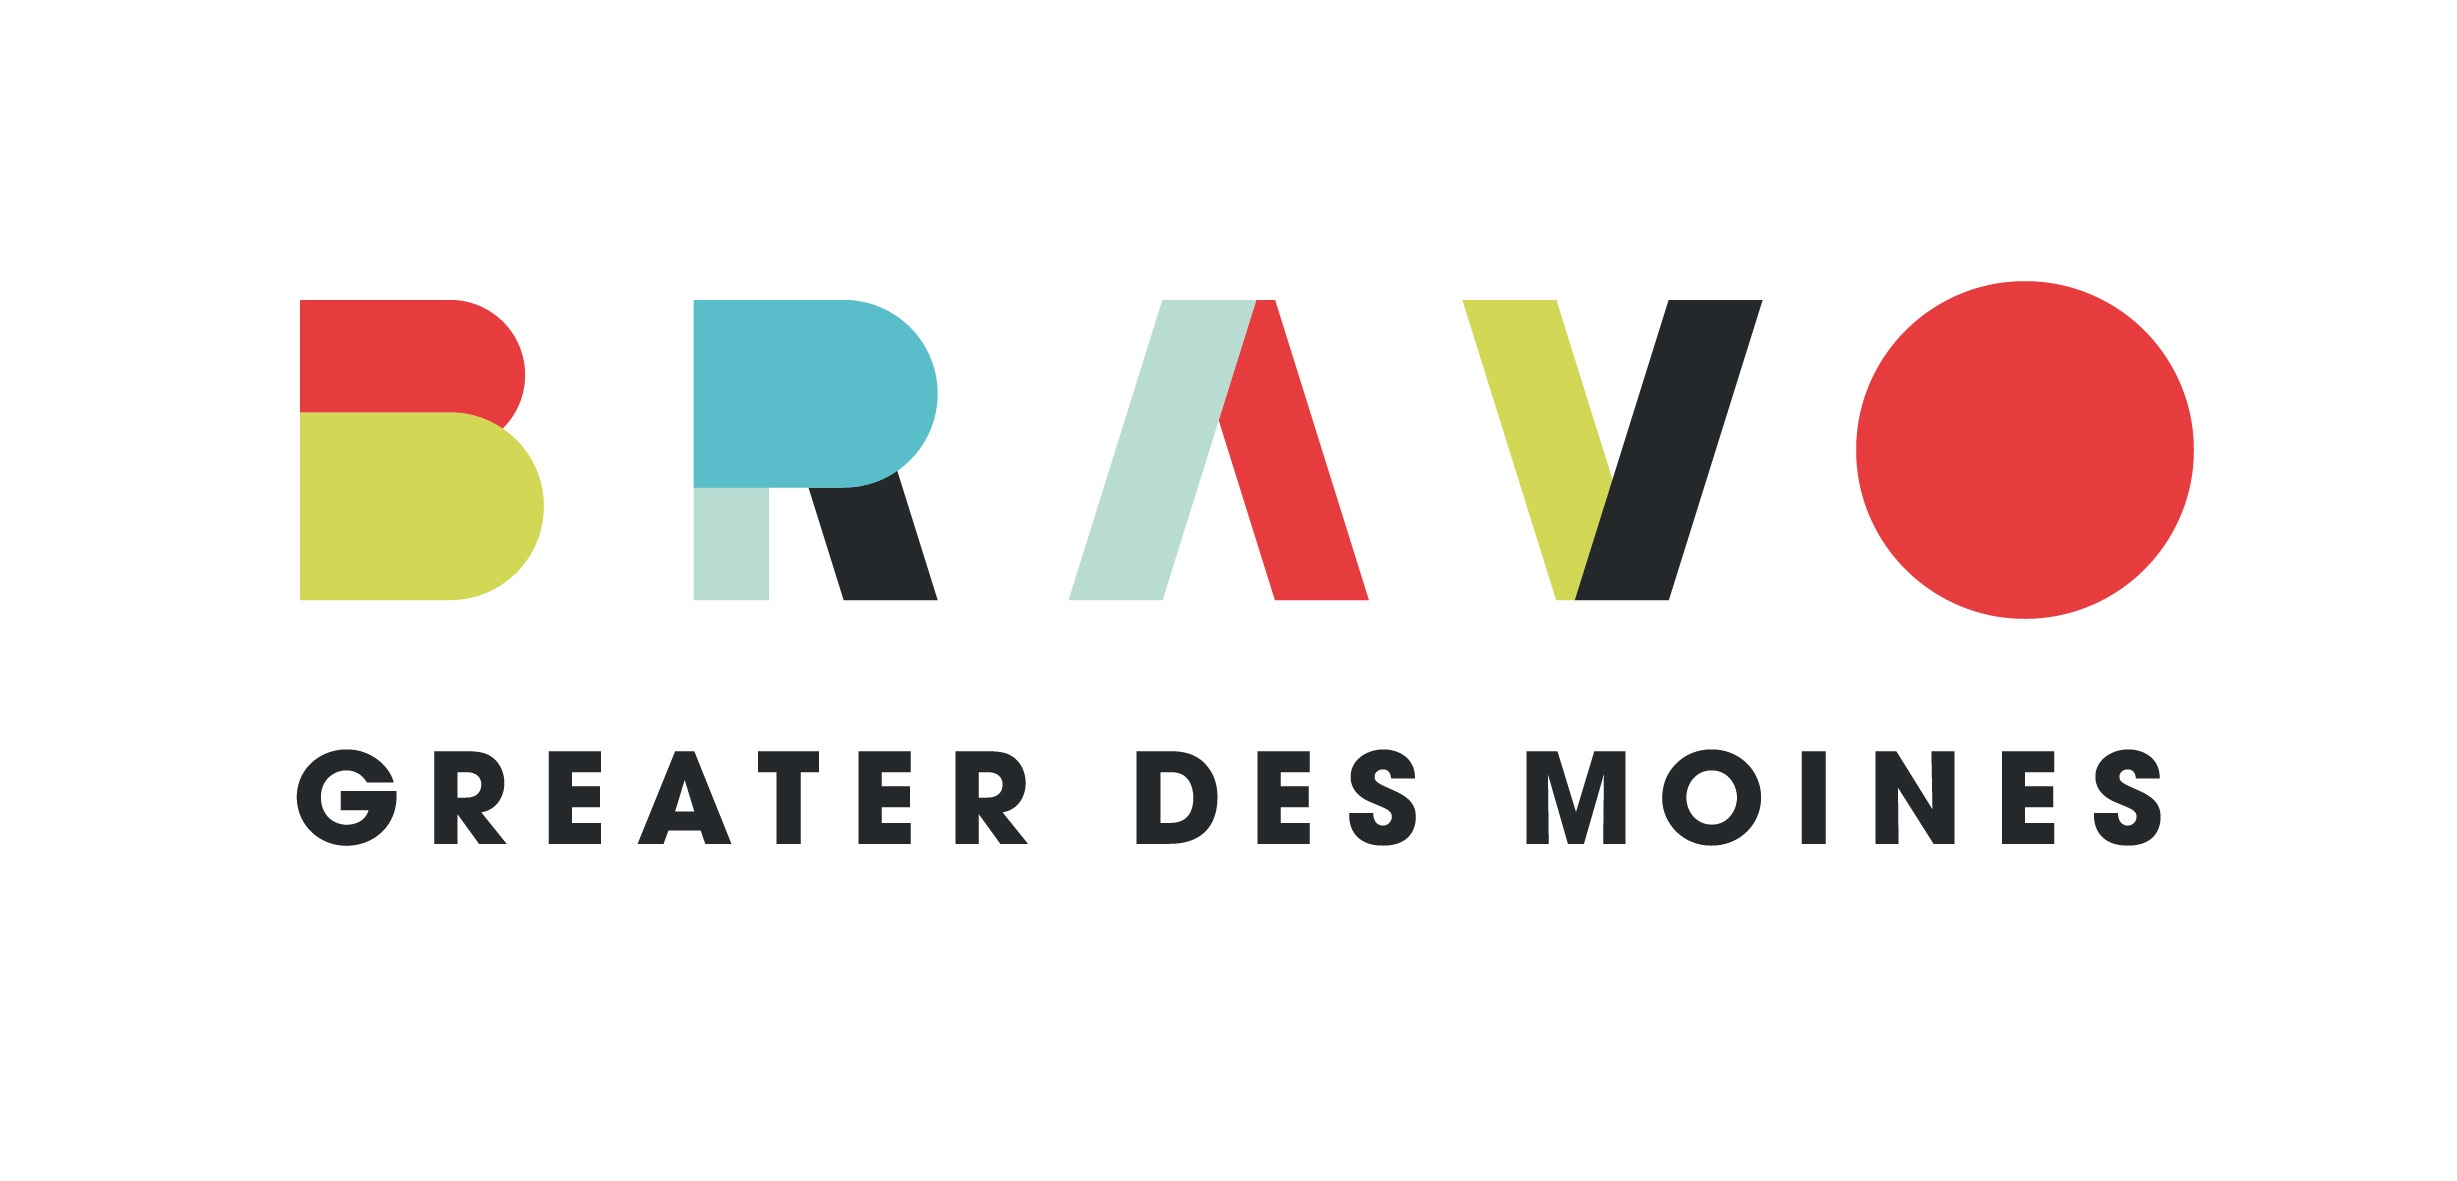 Heartland Youth Choir is a proud recipient of a Cultural Enrichment Grant from Bravo Greater Des Moines, whose mission is to provide reliable funding and support that strengthens arts, culture and heritage organizations serving Greater Des Moines.